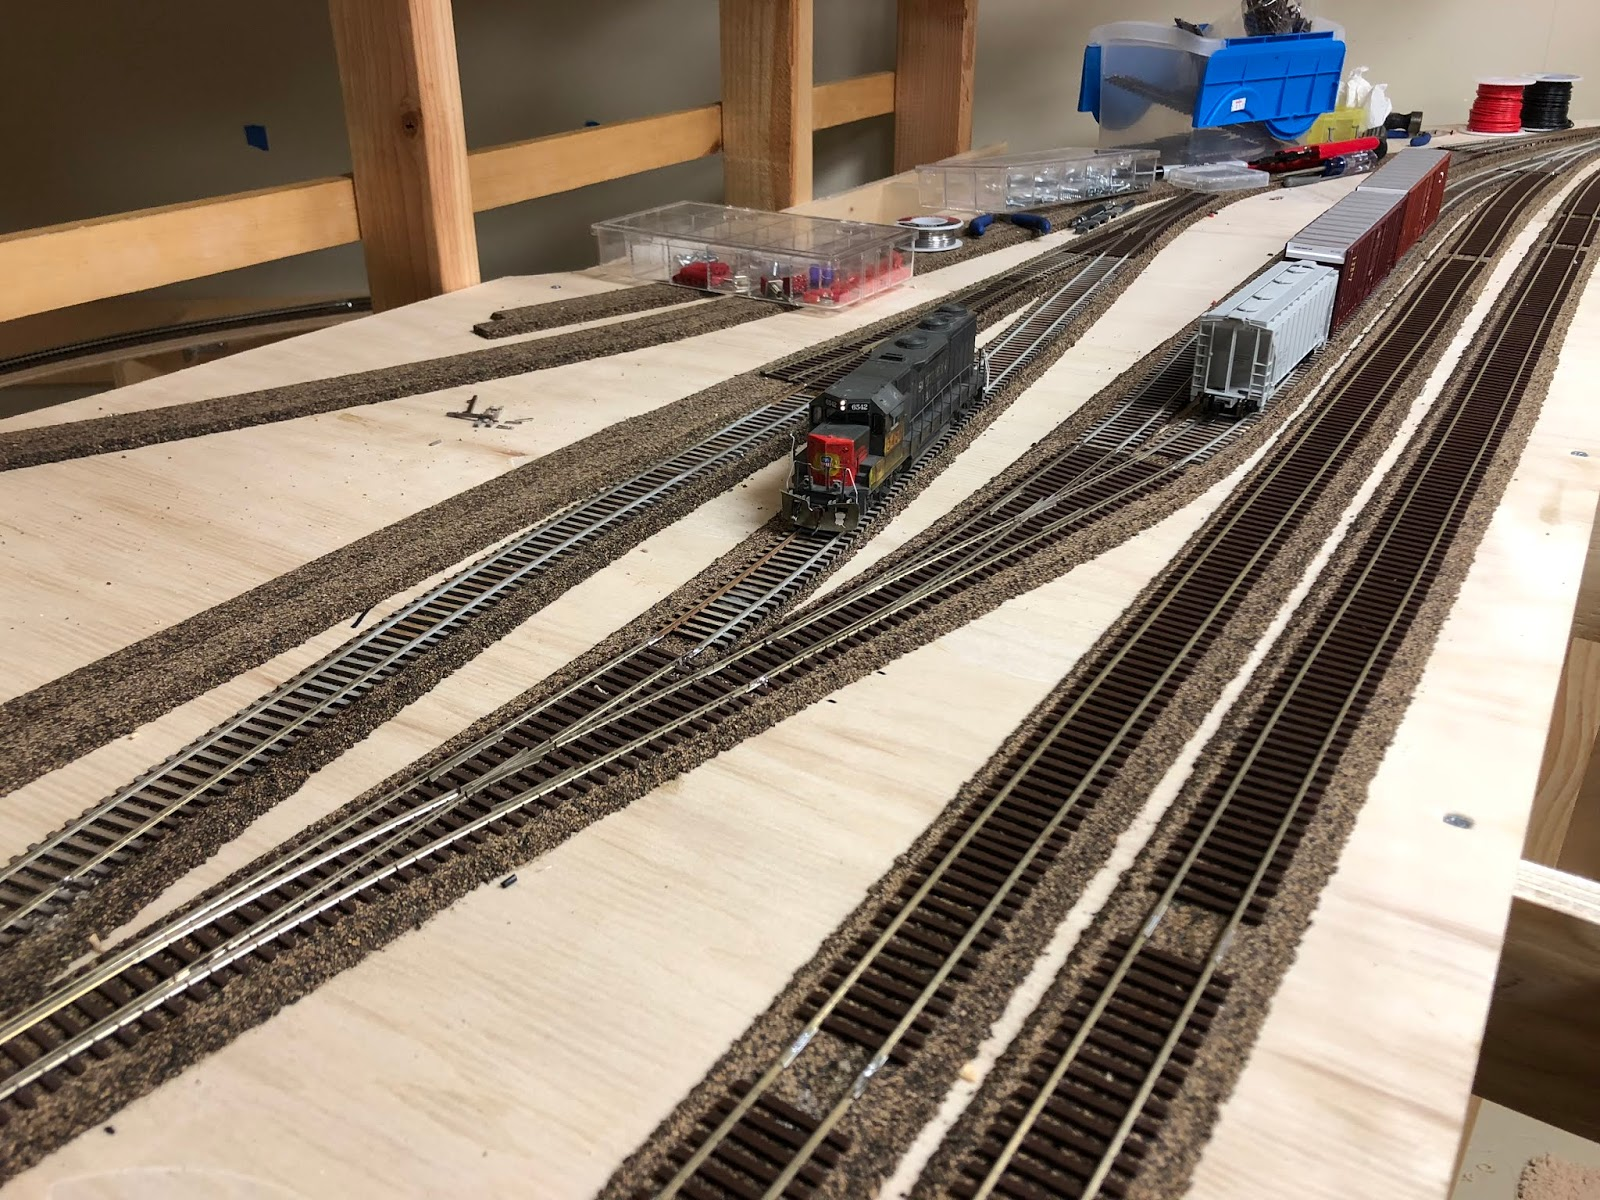 medium resolution of as i left it in the winter construction in oakridge was in progress after initial construction efforts of benchwork track and wiring